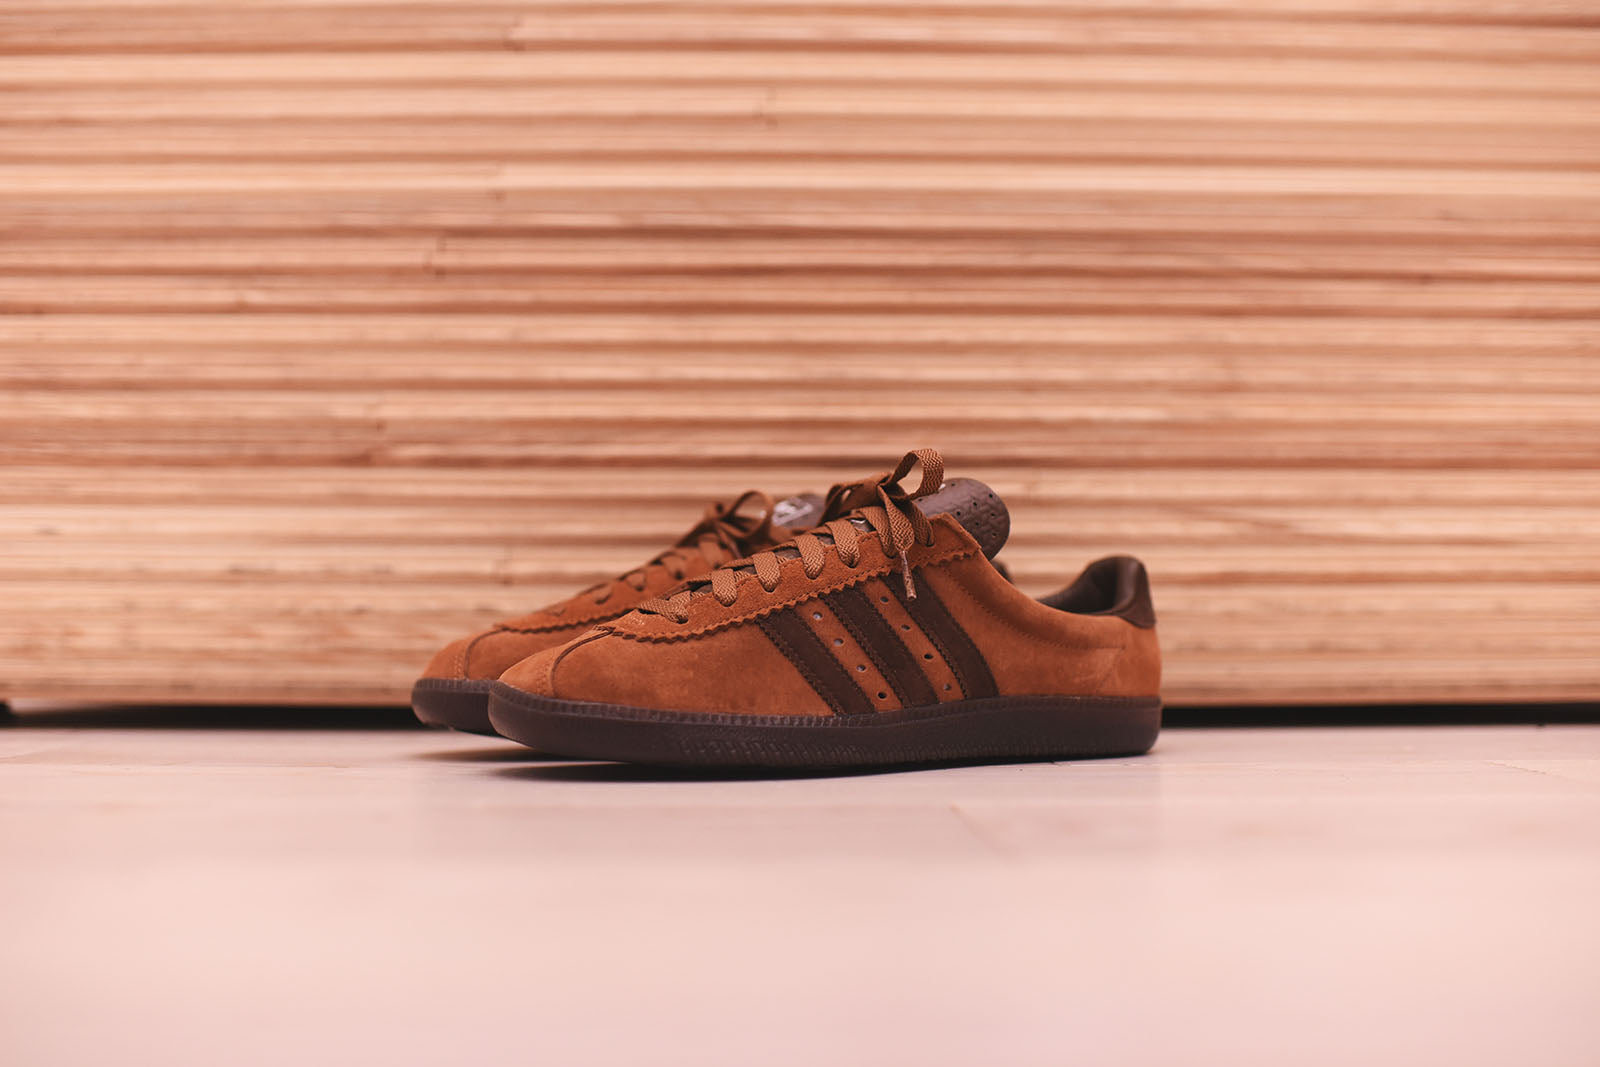 adidas Originals Padiham SPZL - Timber / Duscar / Gum